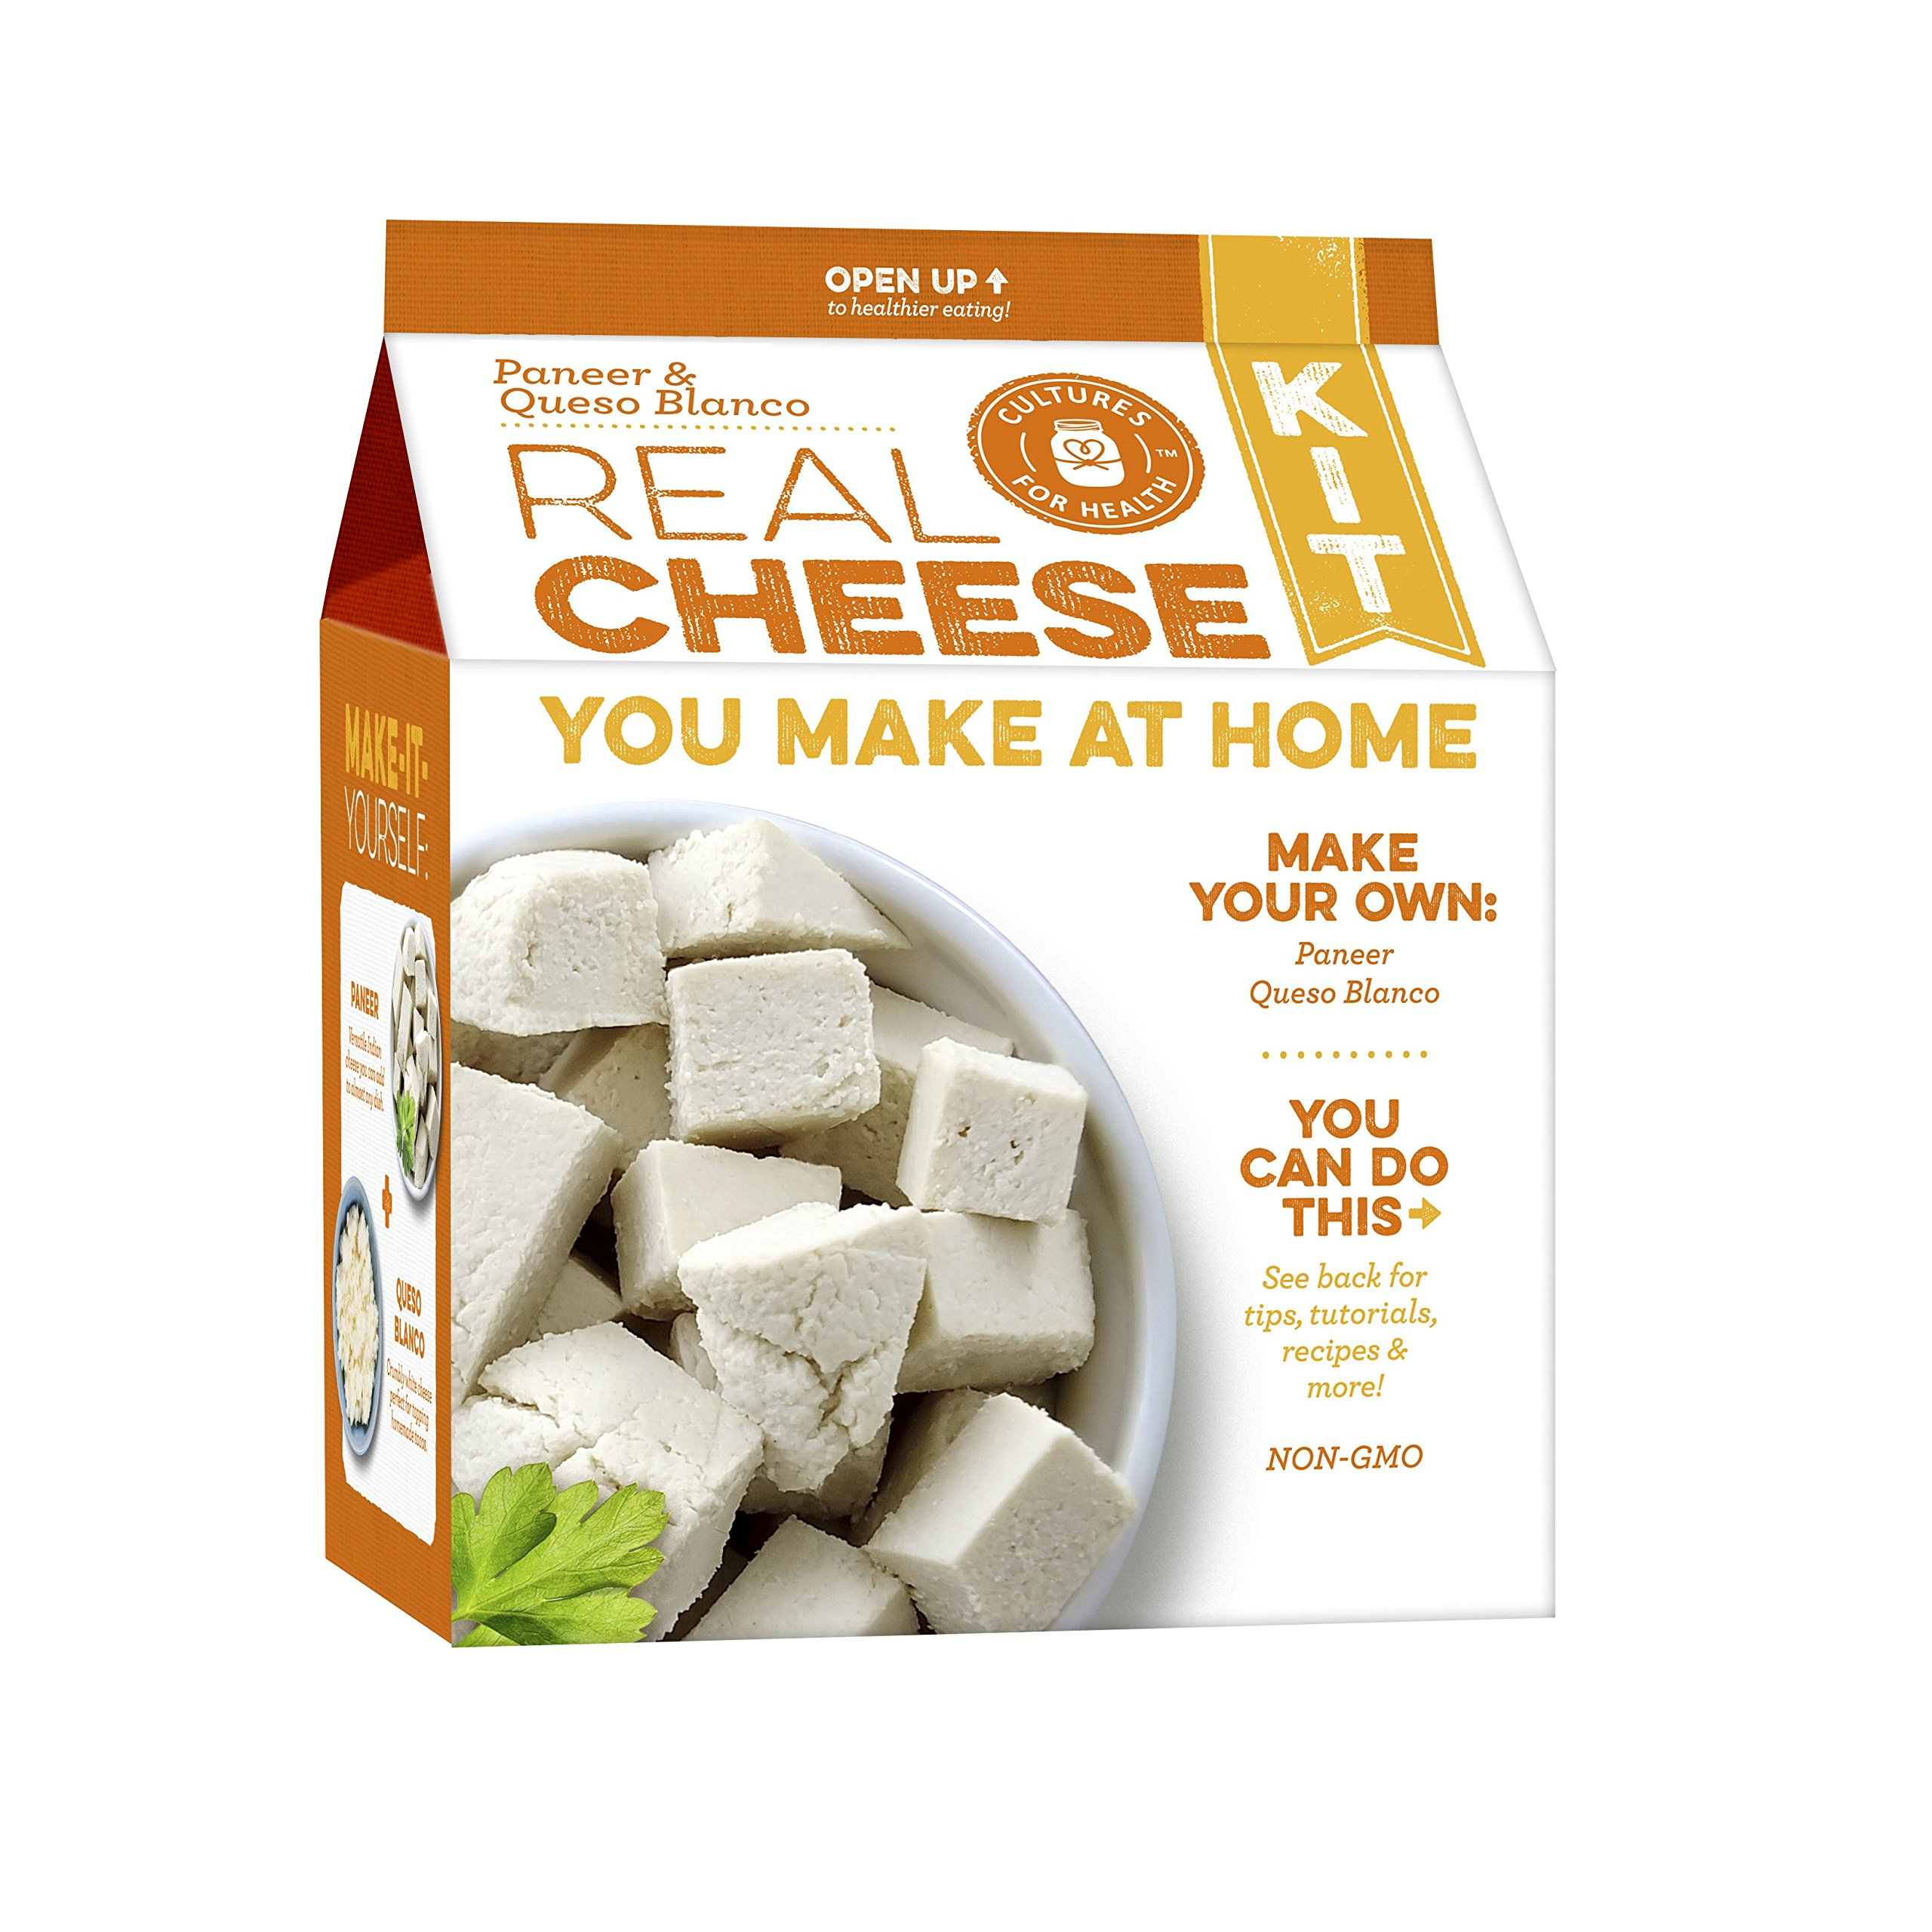 Paneer and Queso Blanco Cheesemaking Kit (Paneer & Queso Blanco Cheese Making Kit)